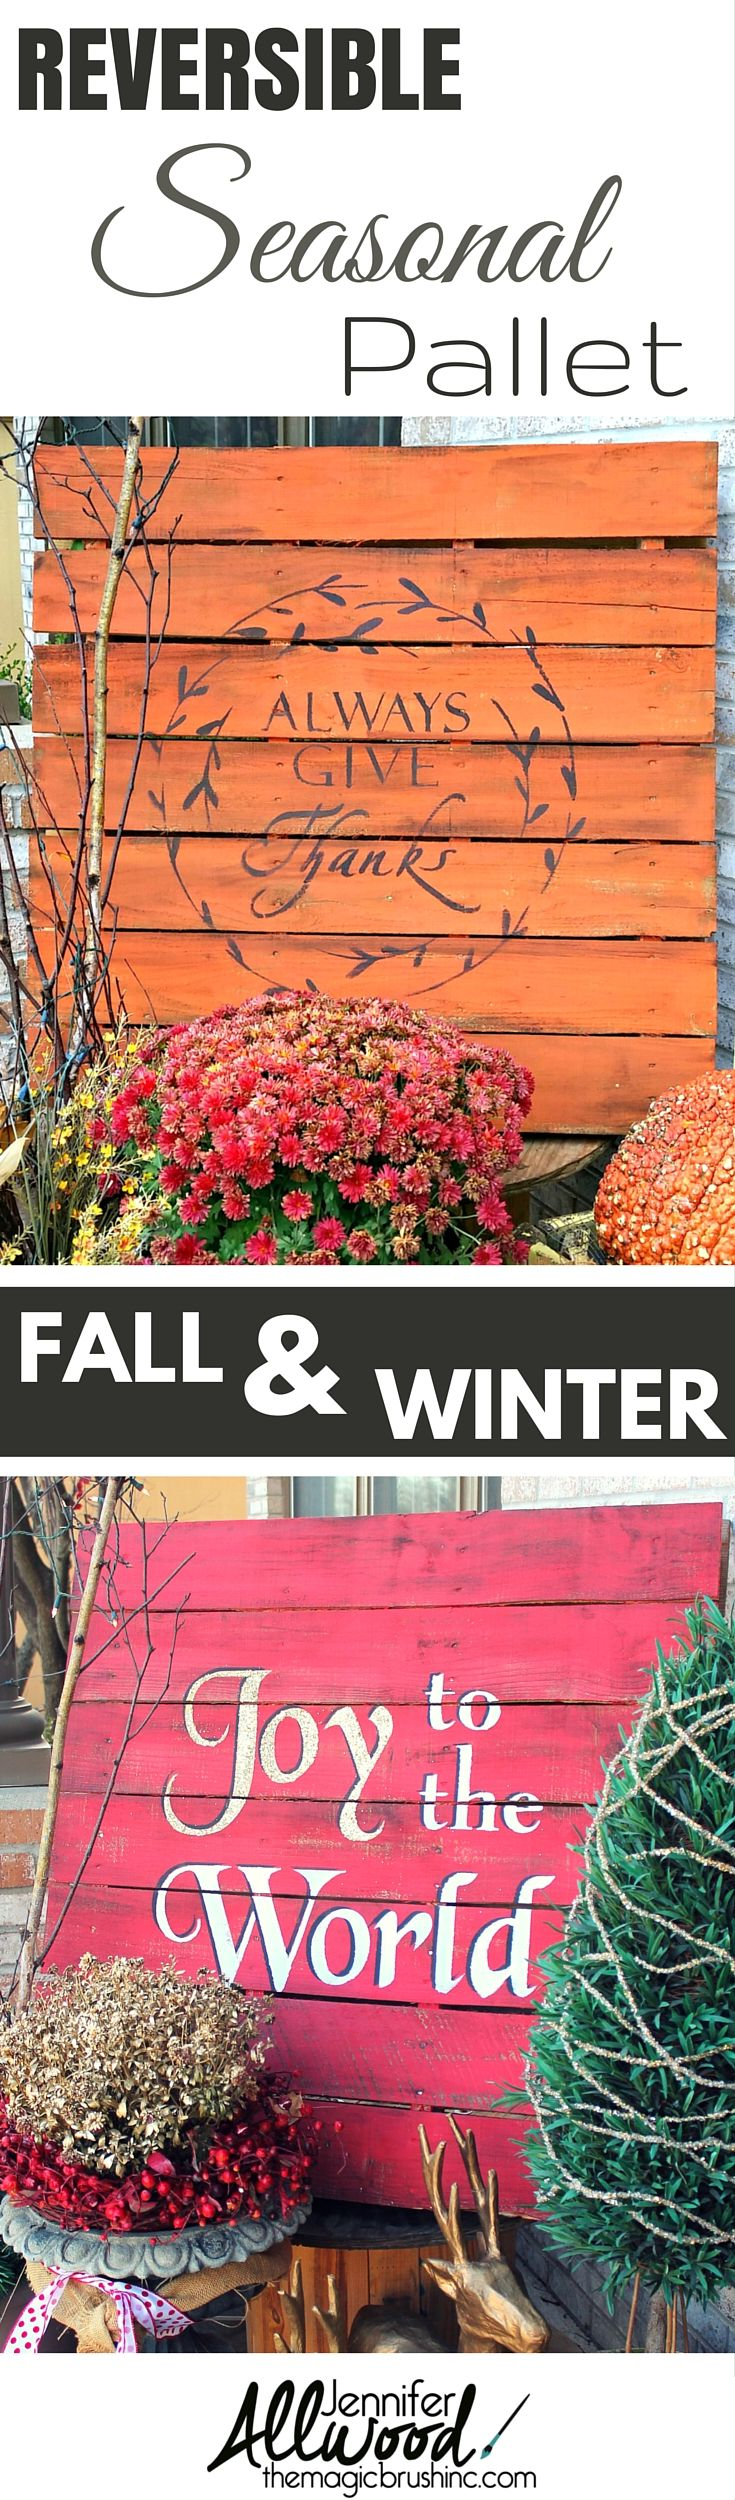 Make your seasonal front porch pallet versatile with two painted sides! It's easier to store and less work to build! On this one I have Thanksgiving and Christmas. More painting tips and DIY projects at theMagicBrushinc.com